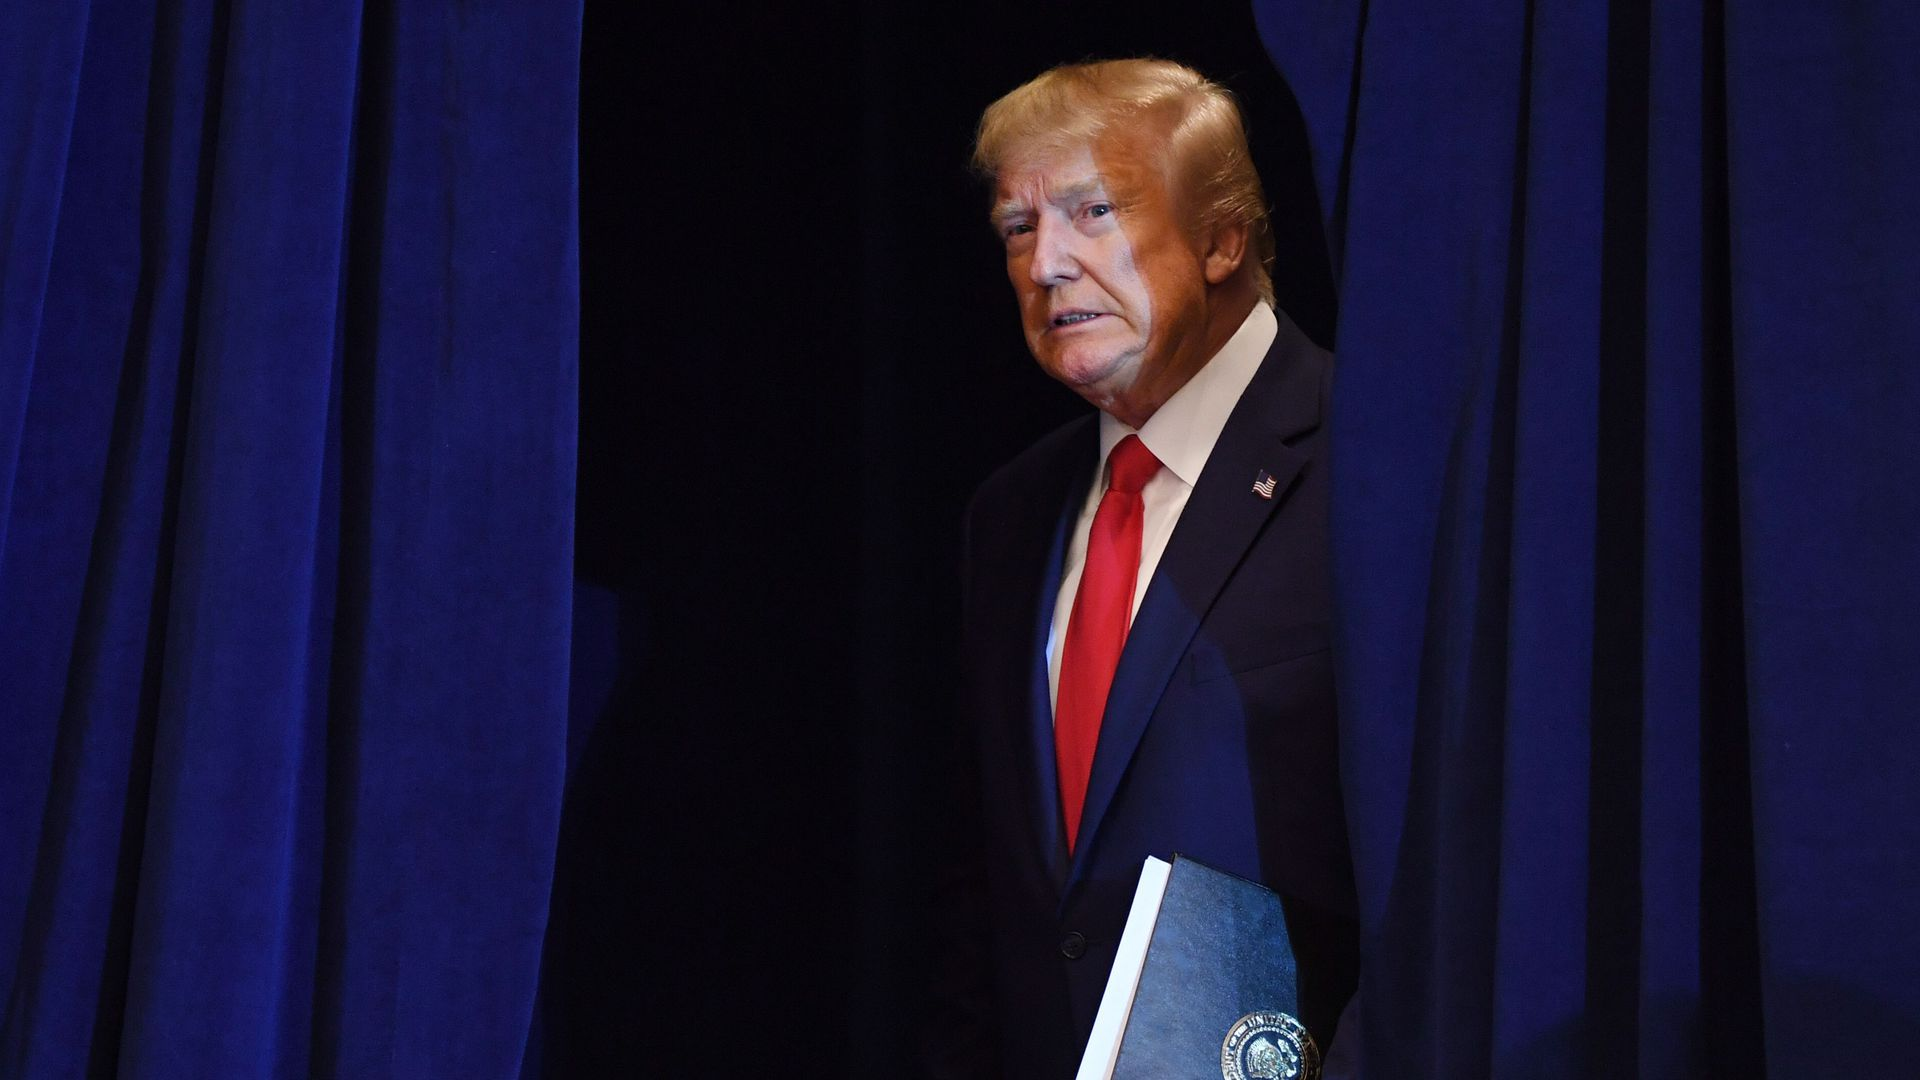 Intelligence community watchdog debunks claims by Trump and allies on whistleblower